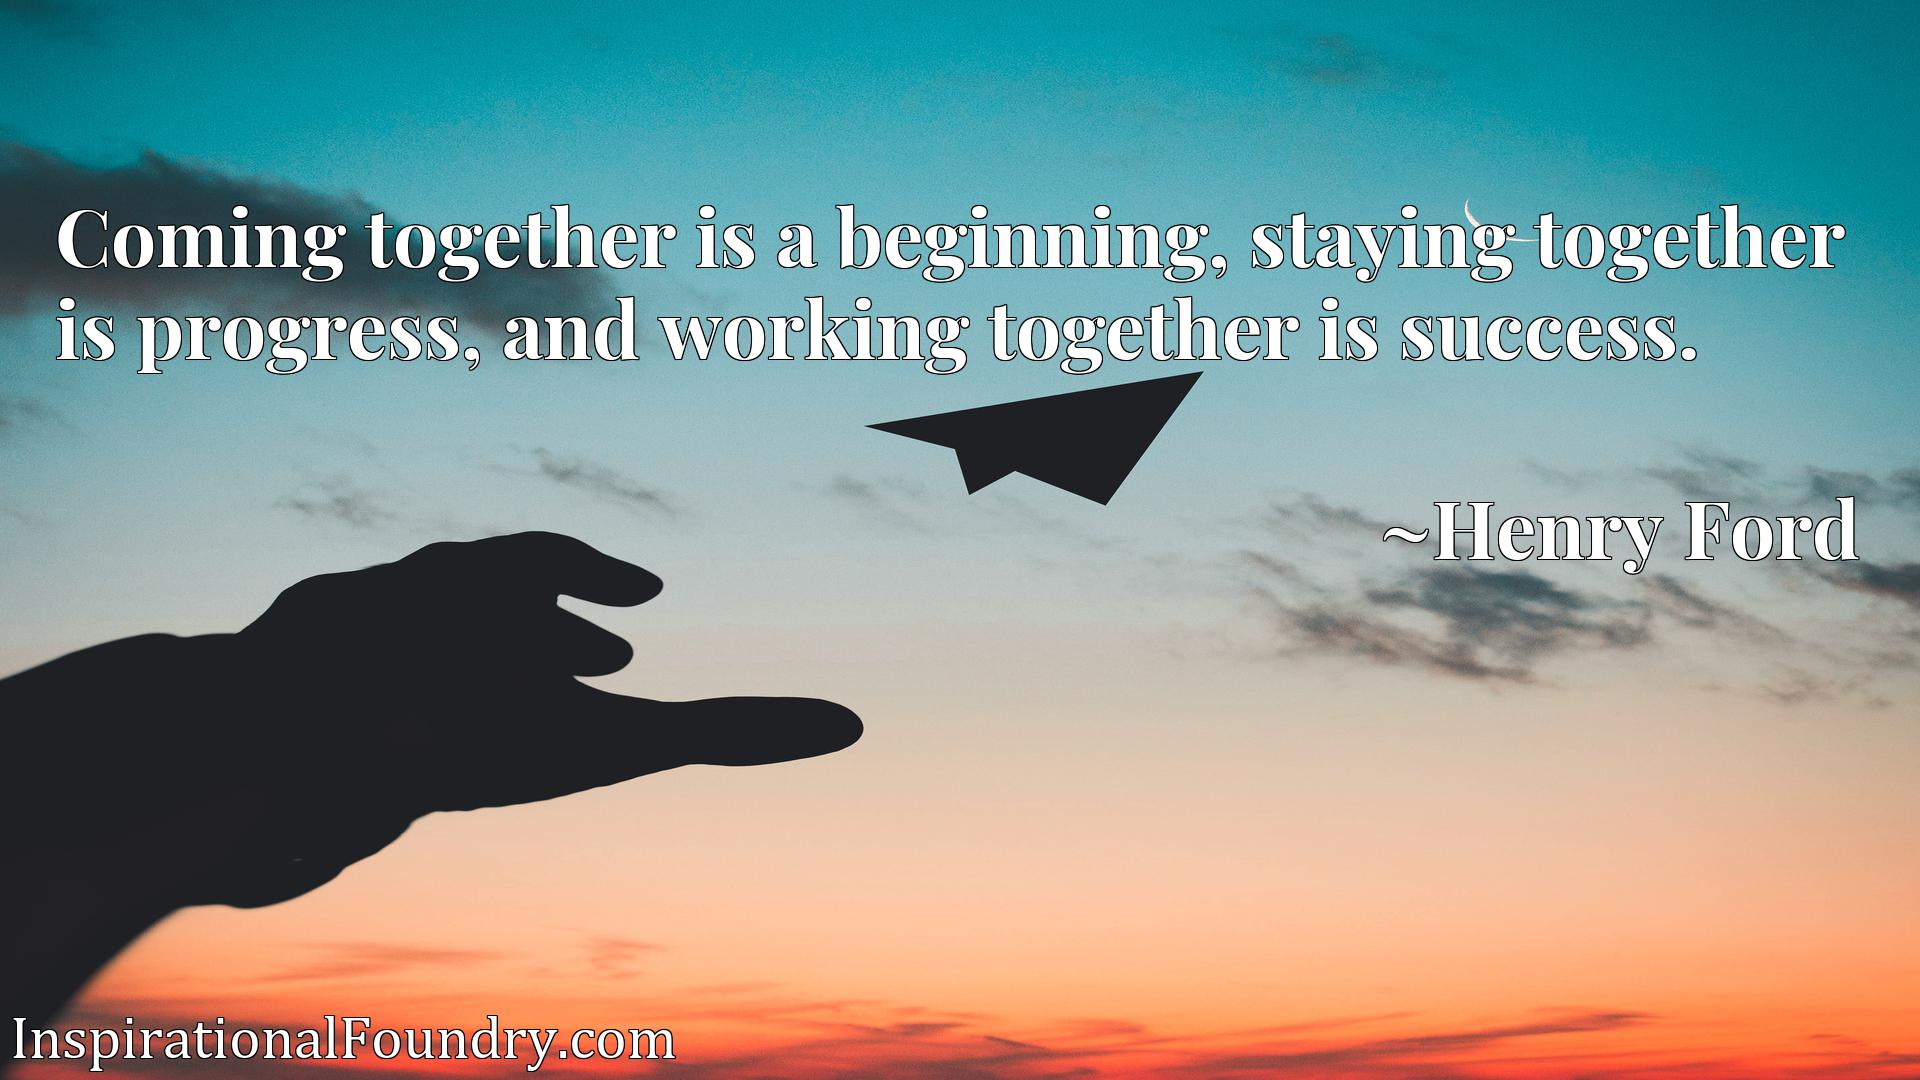 Coming together is a beginning, staying together is progress, and working together is success.